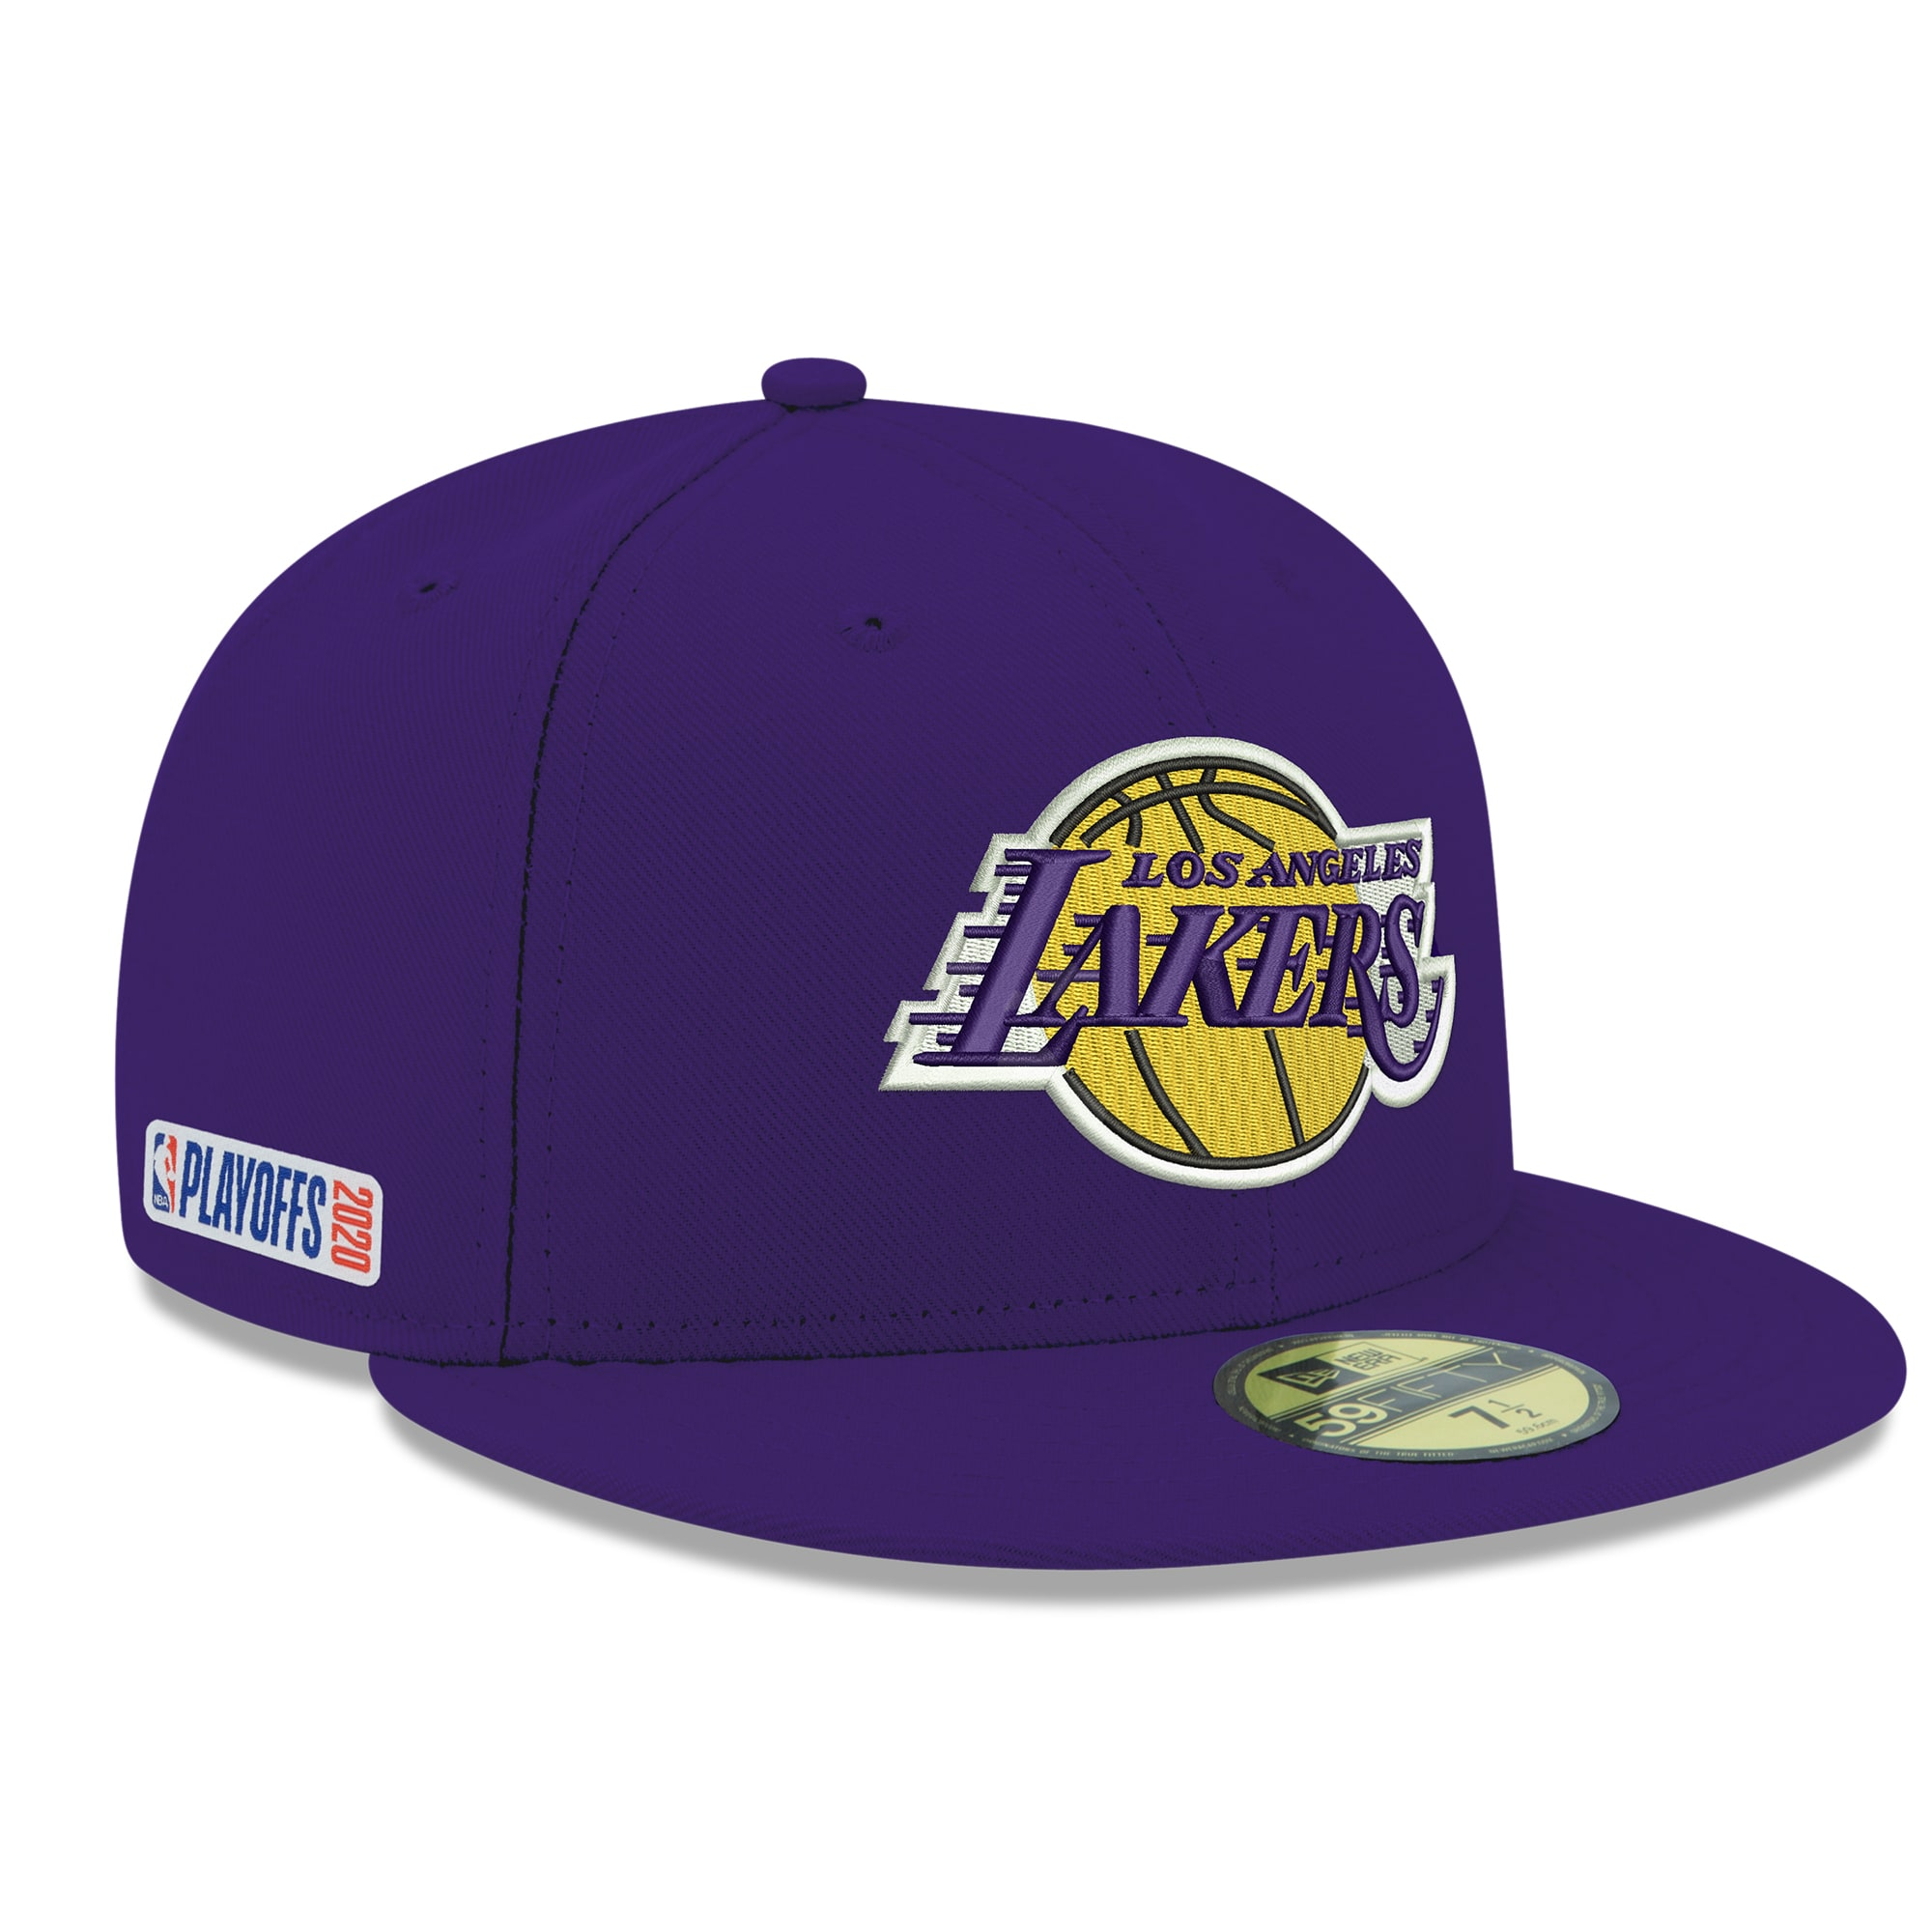 Los Angeles Lakers New Era 2020 NBA Playoffs Bound 59FIFTY Fitted Hat - Purple